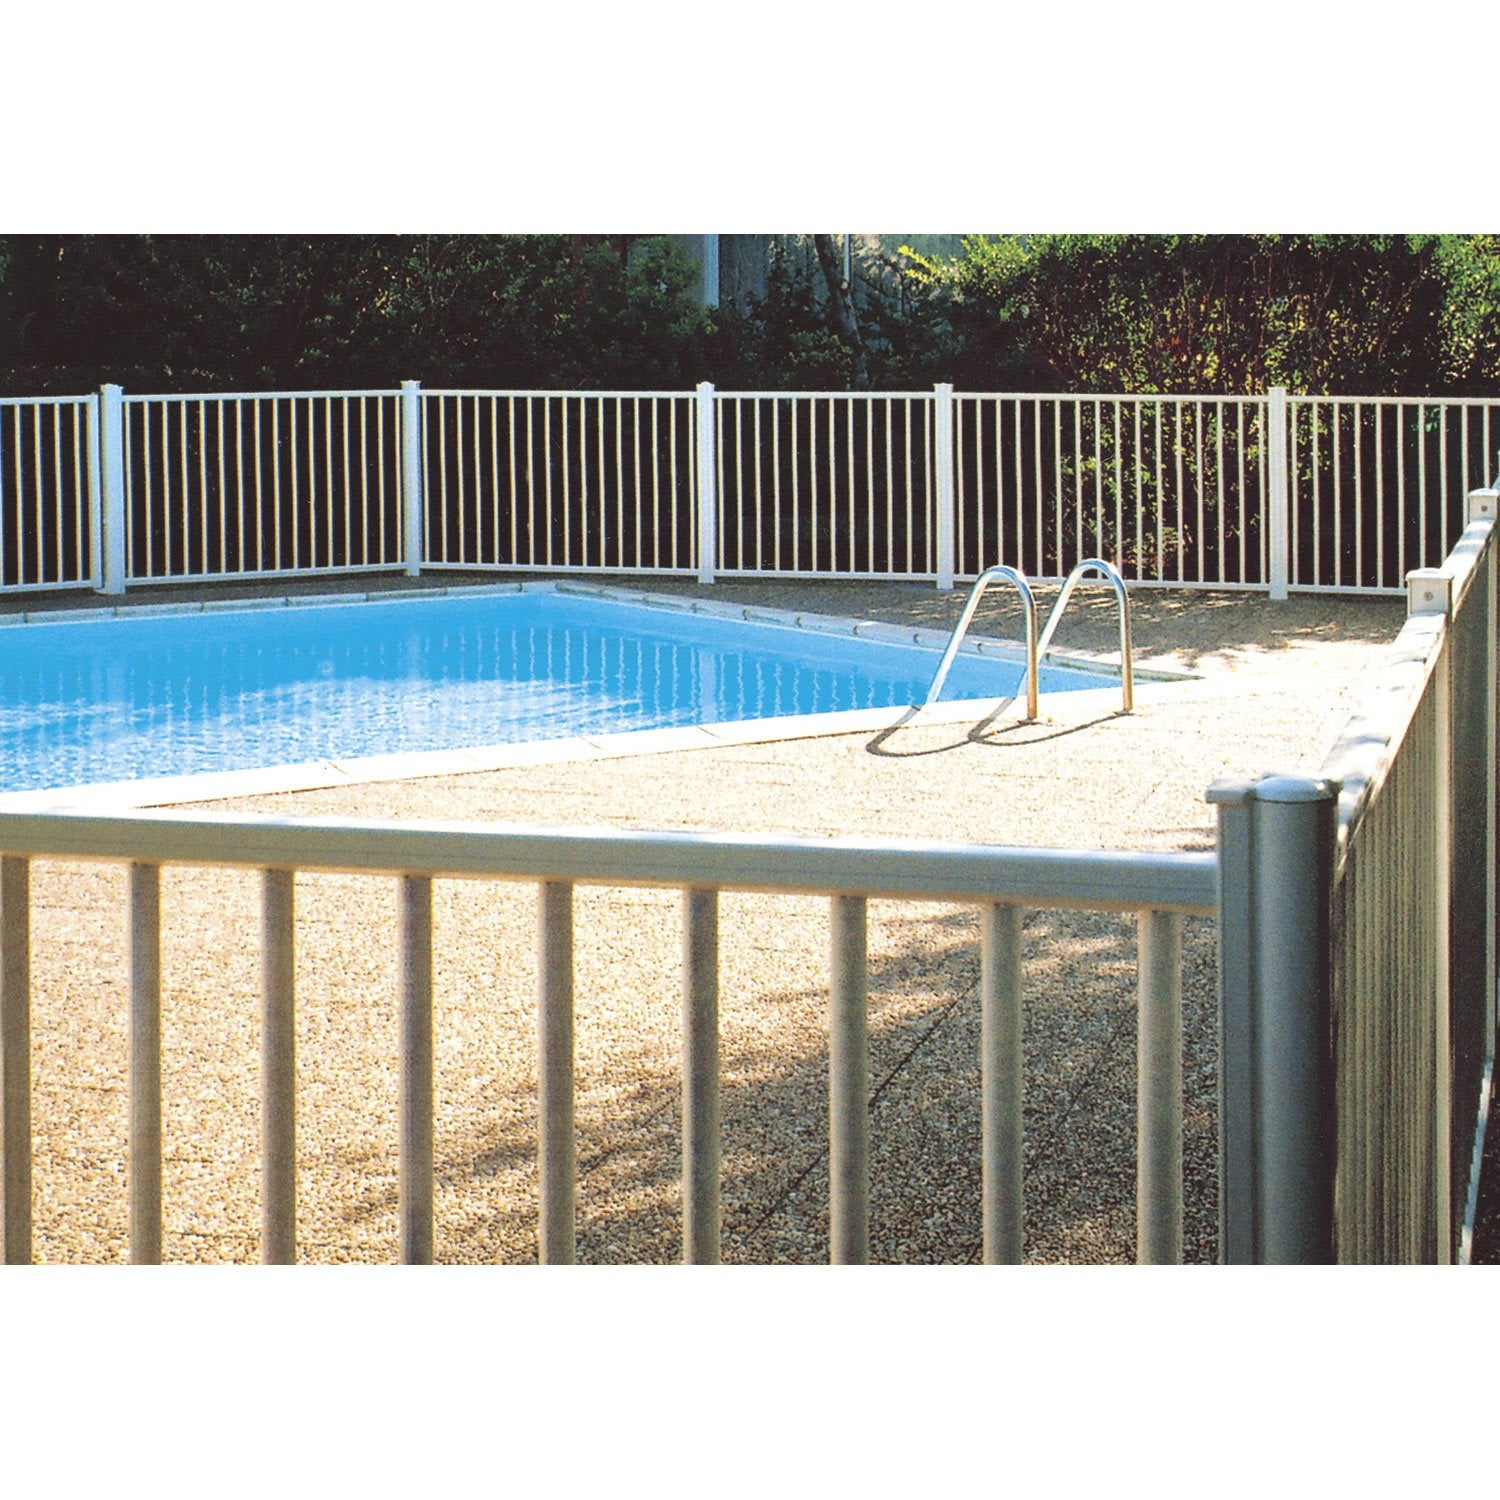 Barri re pour piscine aluminium issambres blanc 9010 h for Cloture piscine